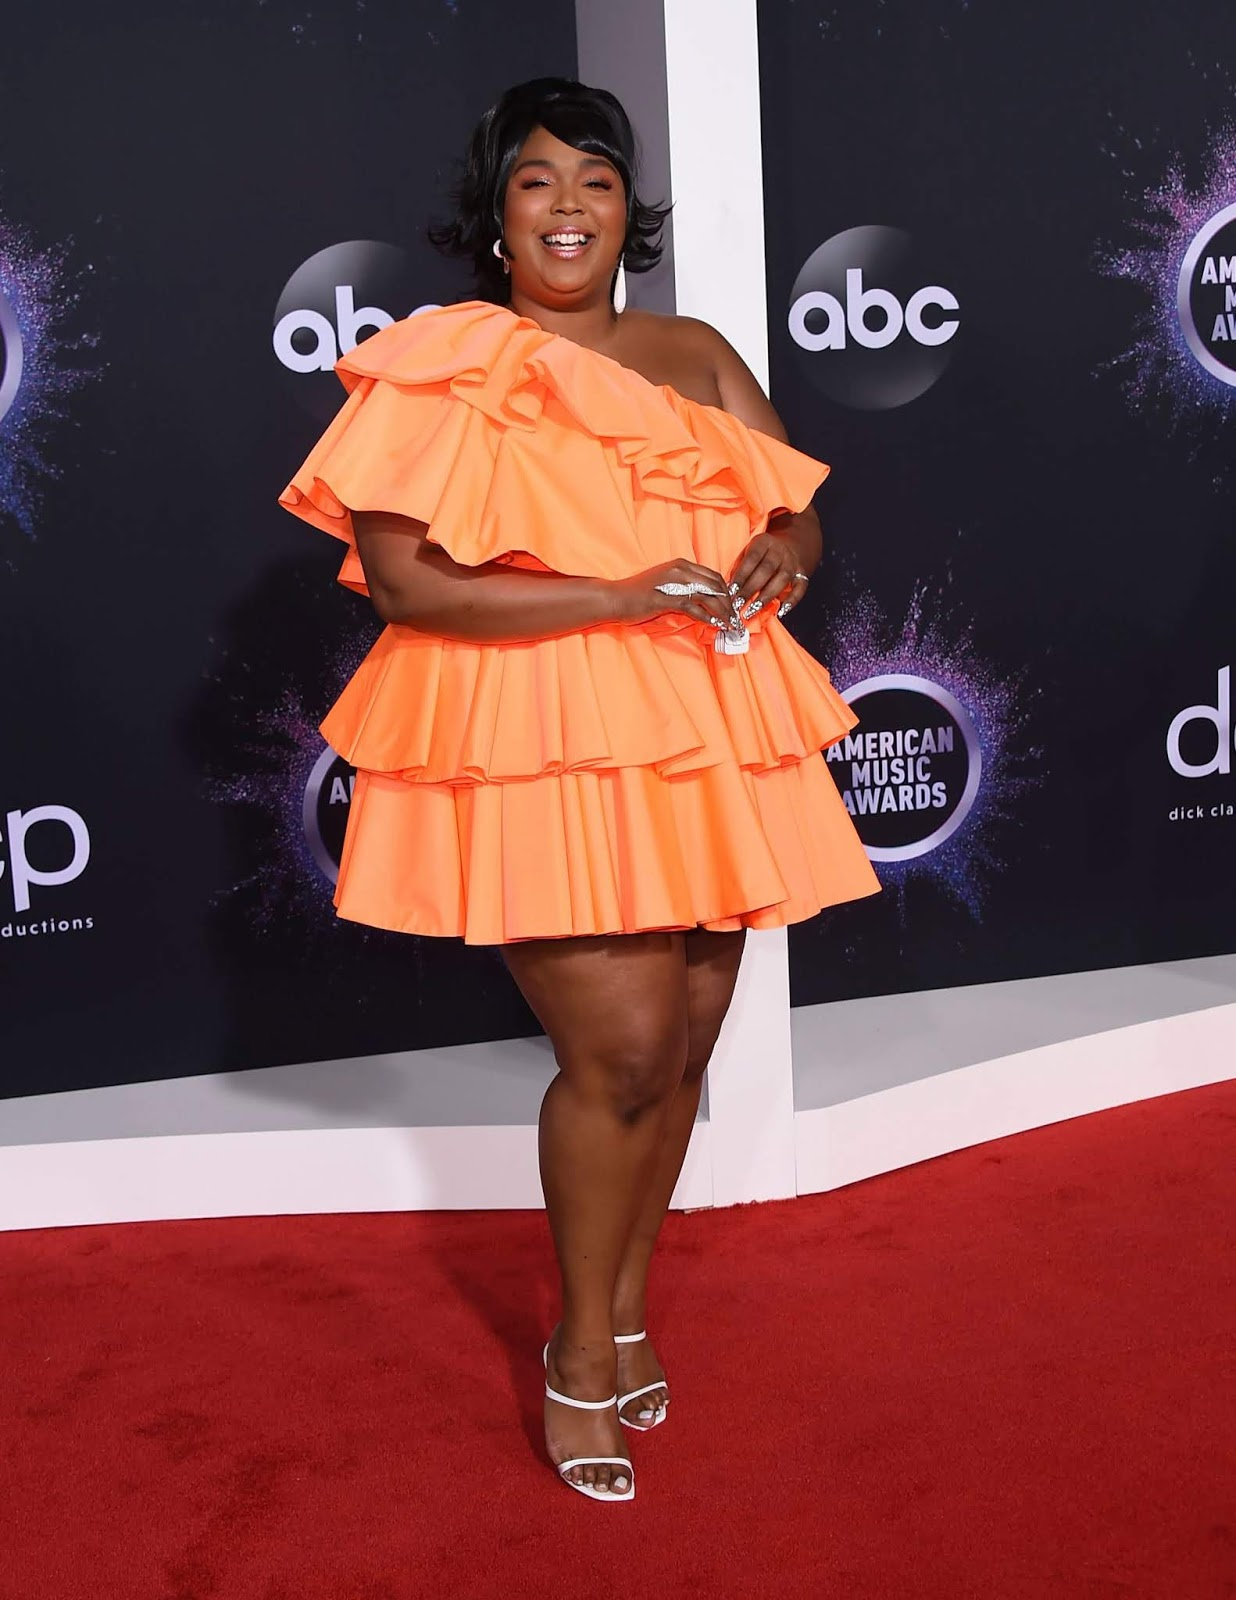 Lizzo rocked the red carpet in a ruffled, orange minidress and a very miniature purse